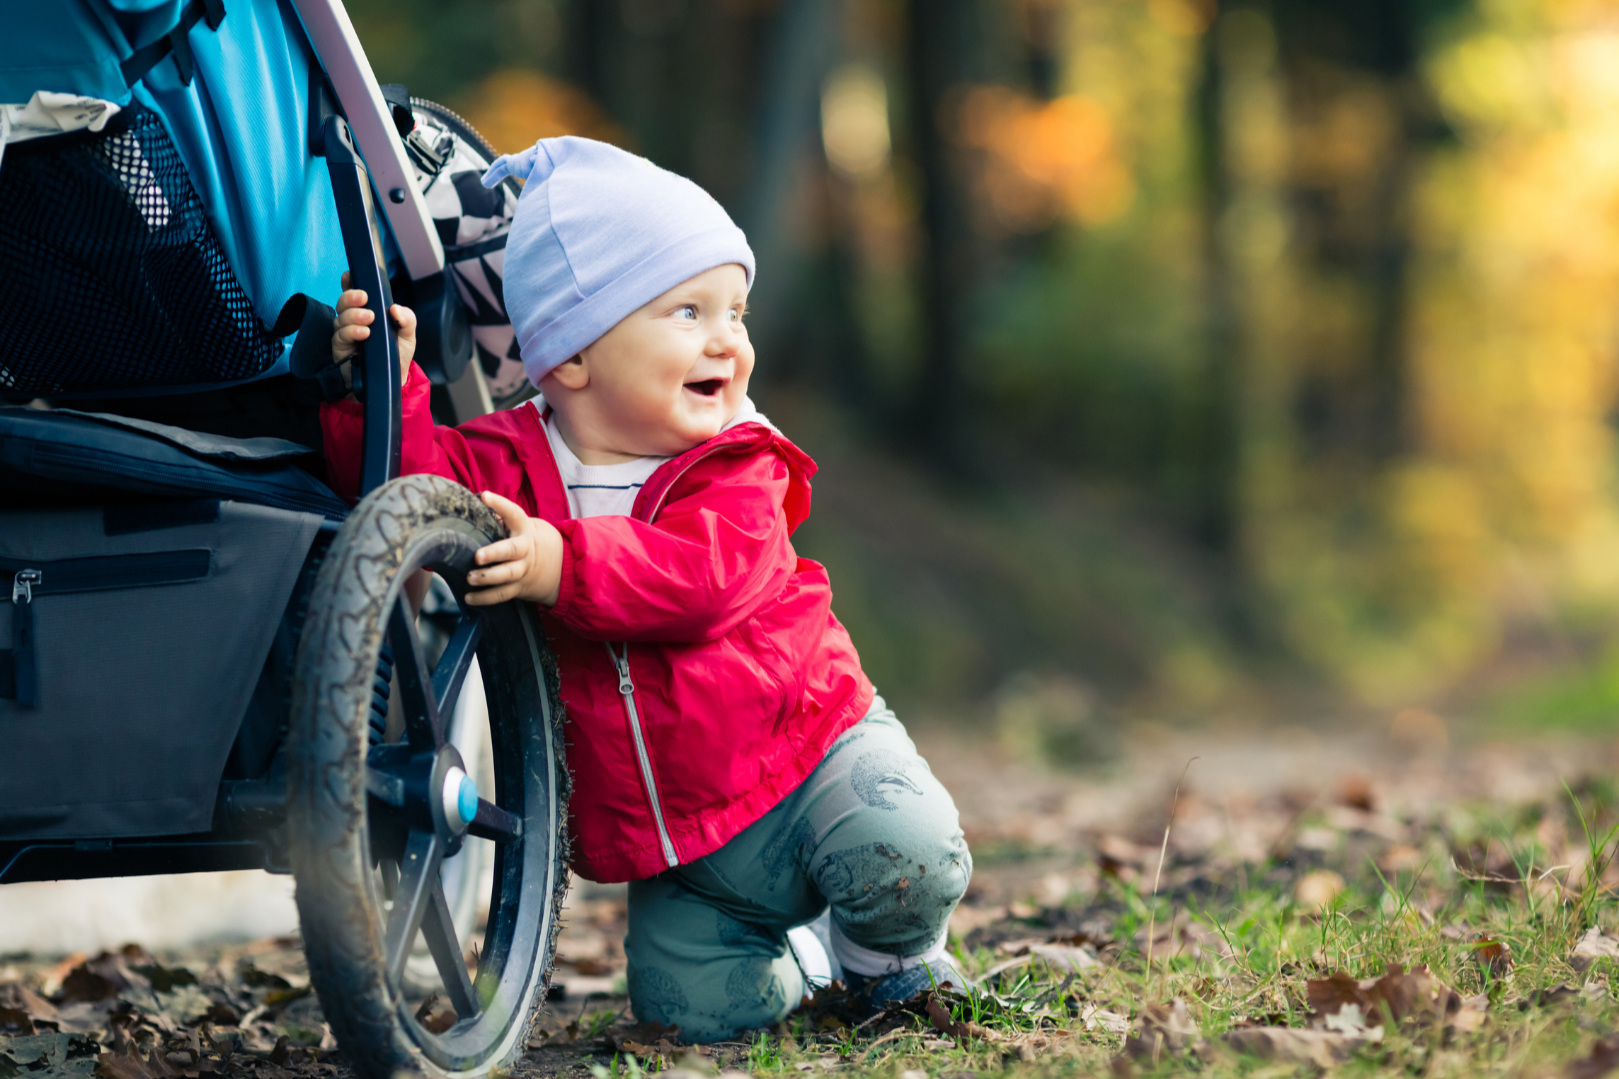 Roll & Stroll at EECO - What: Weekly walking club for caregivers with little ones.Where: EECO Lodge, Mission Creek Park, KELOWNAWhen: Thursdays, 9:30 a.m. - 11 a.m. all JuneCost: FREEMore: Click here